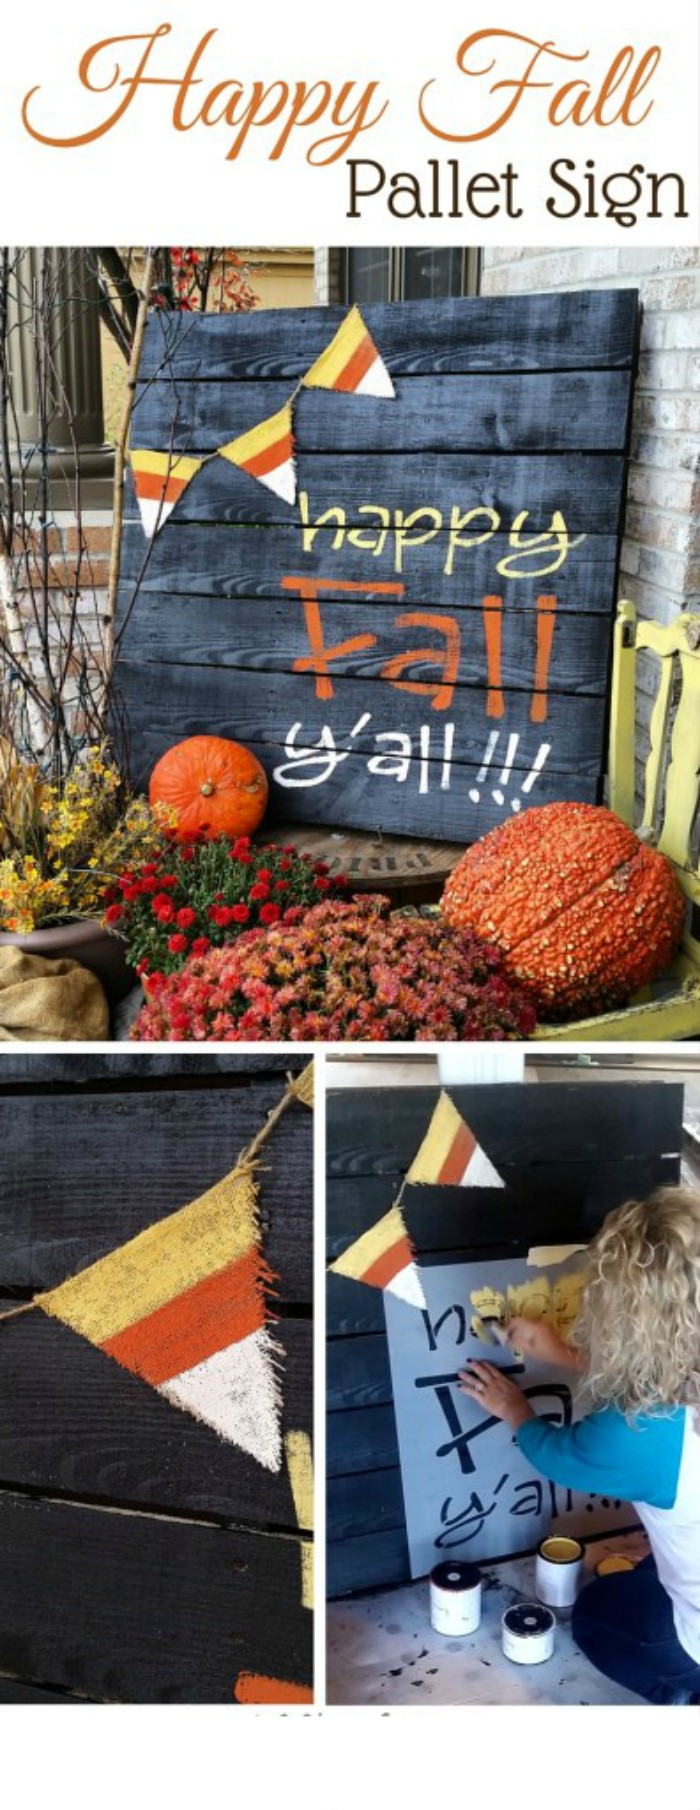 DIY Happy Fall Pallet Sign Fall Decoration Ideas For Your Home